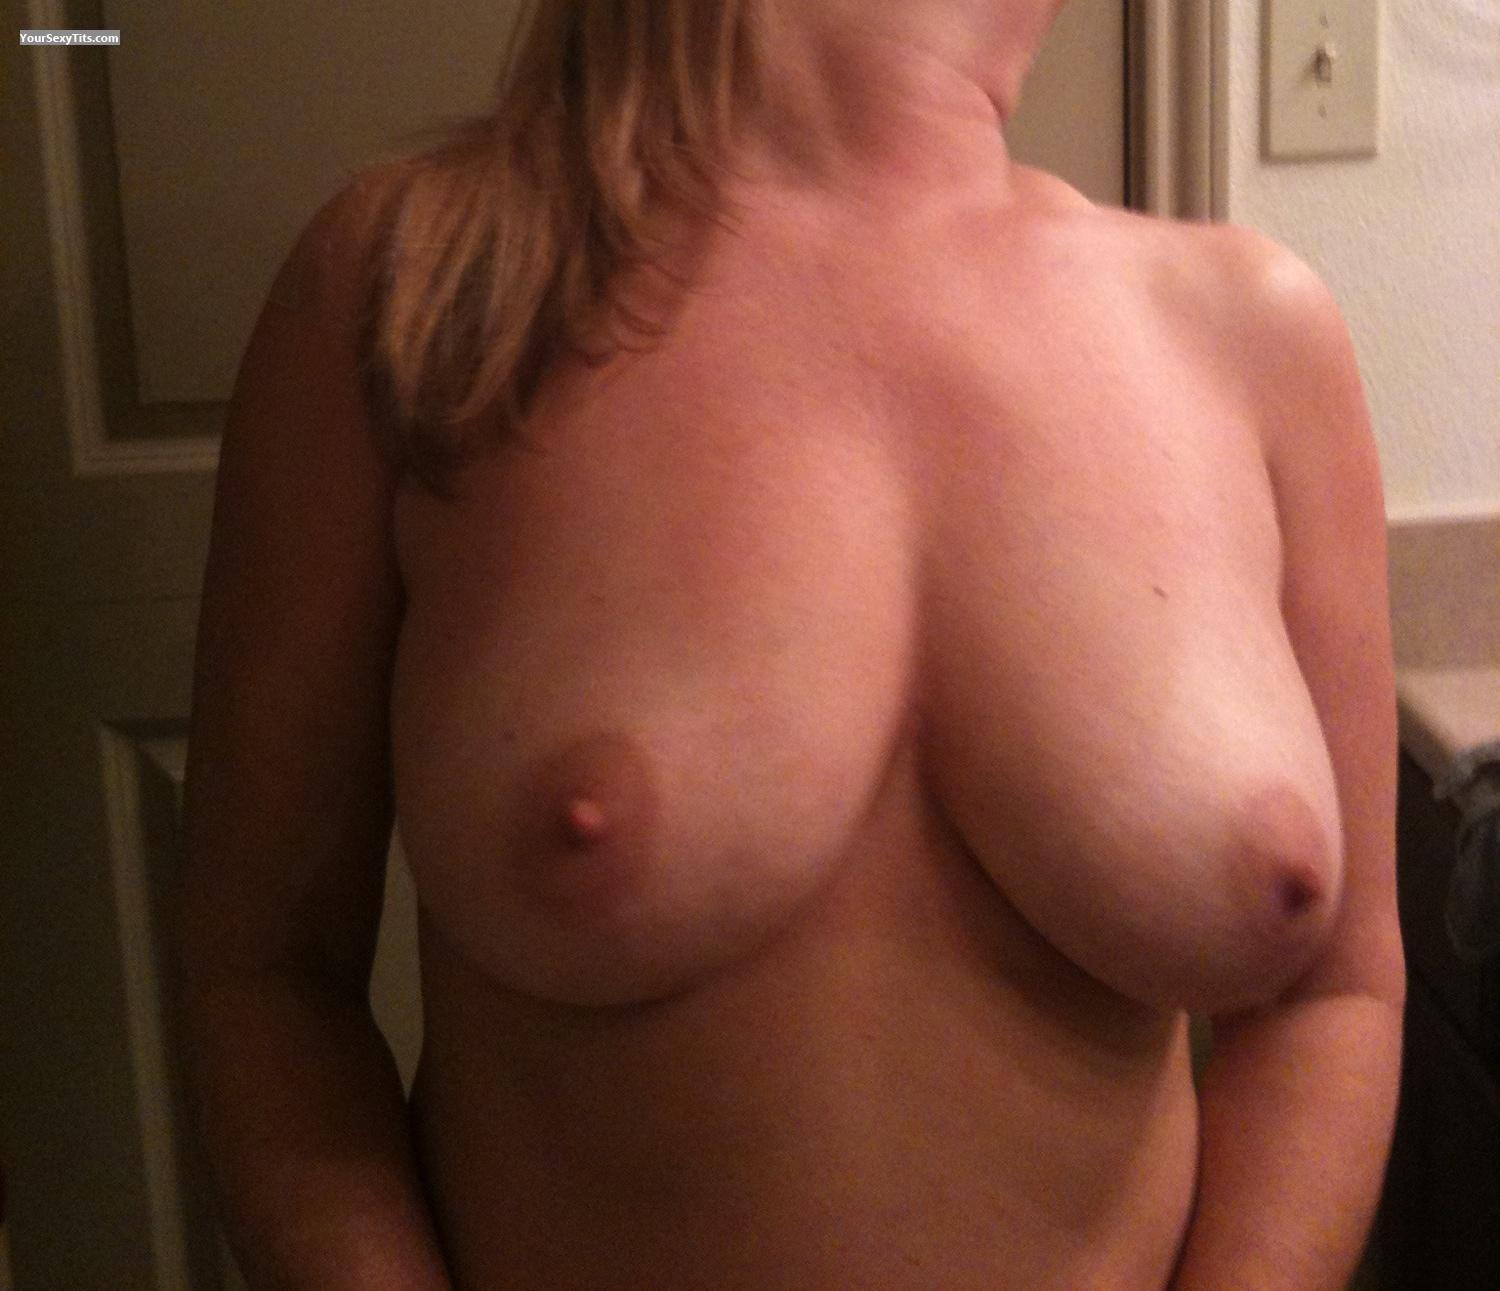 Tit Flash: Very Big Tits By IPhone - Natural50 from United States